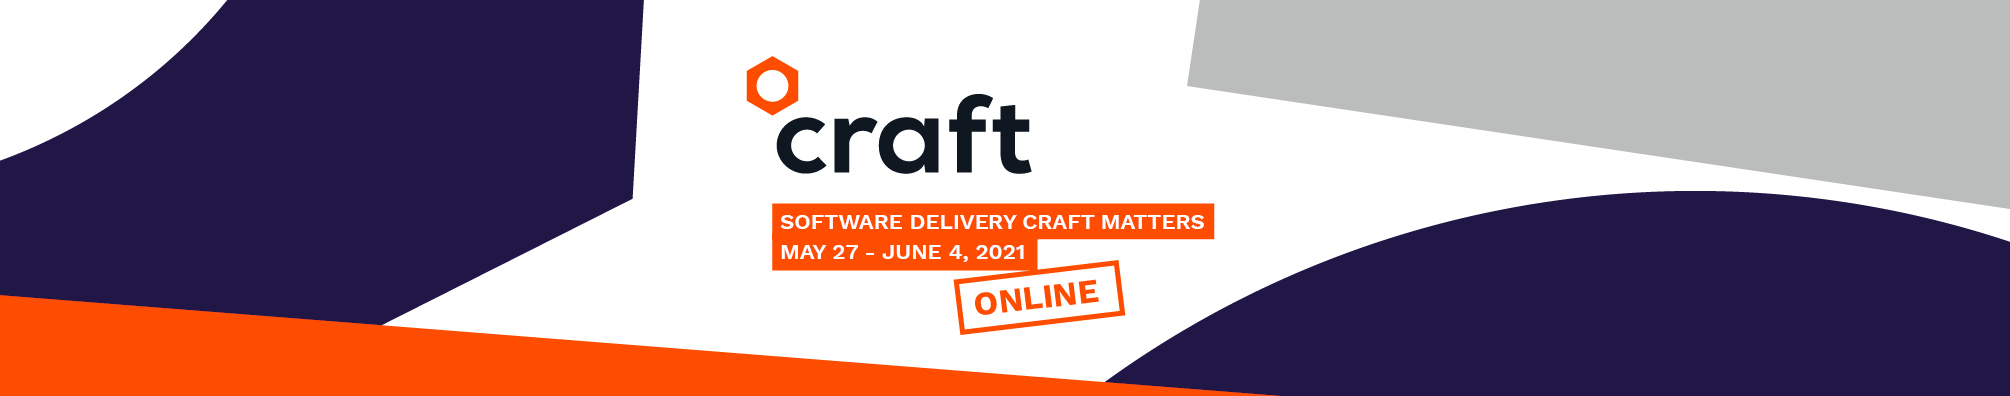 CraftHub - Craft Conference 2021